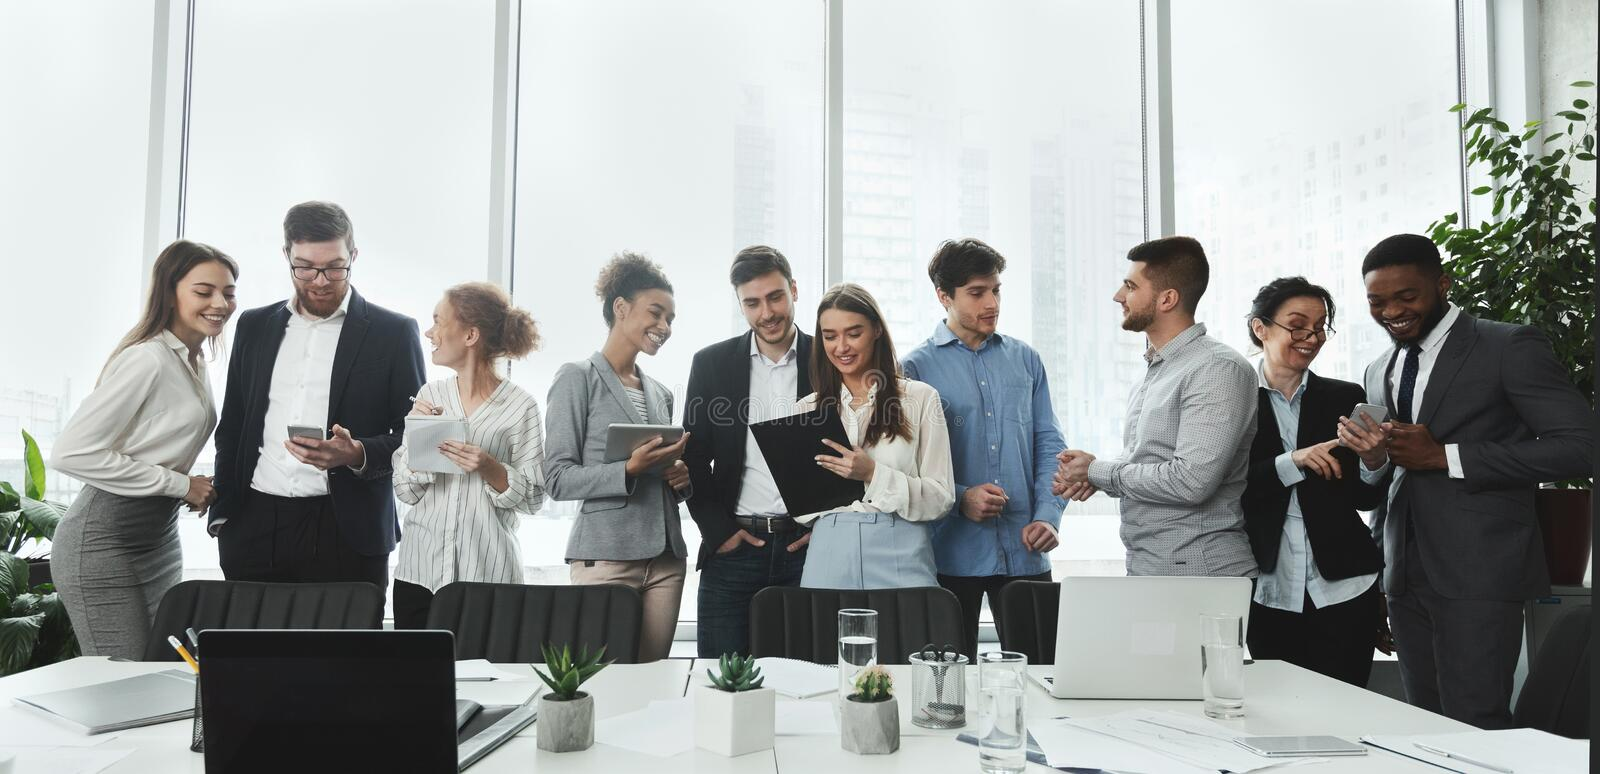 Successful business team talking in conference room royalty free stock photo